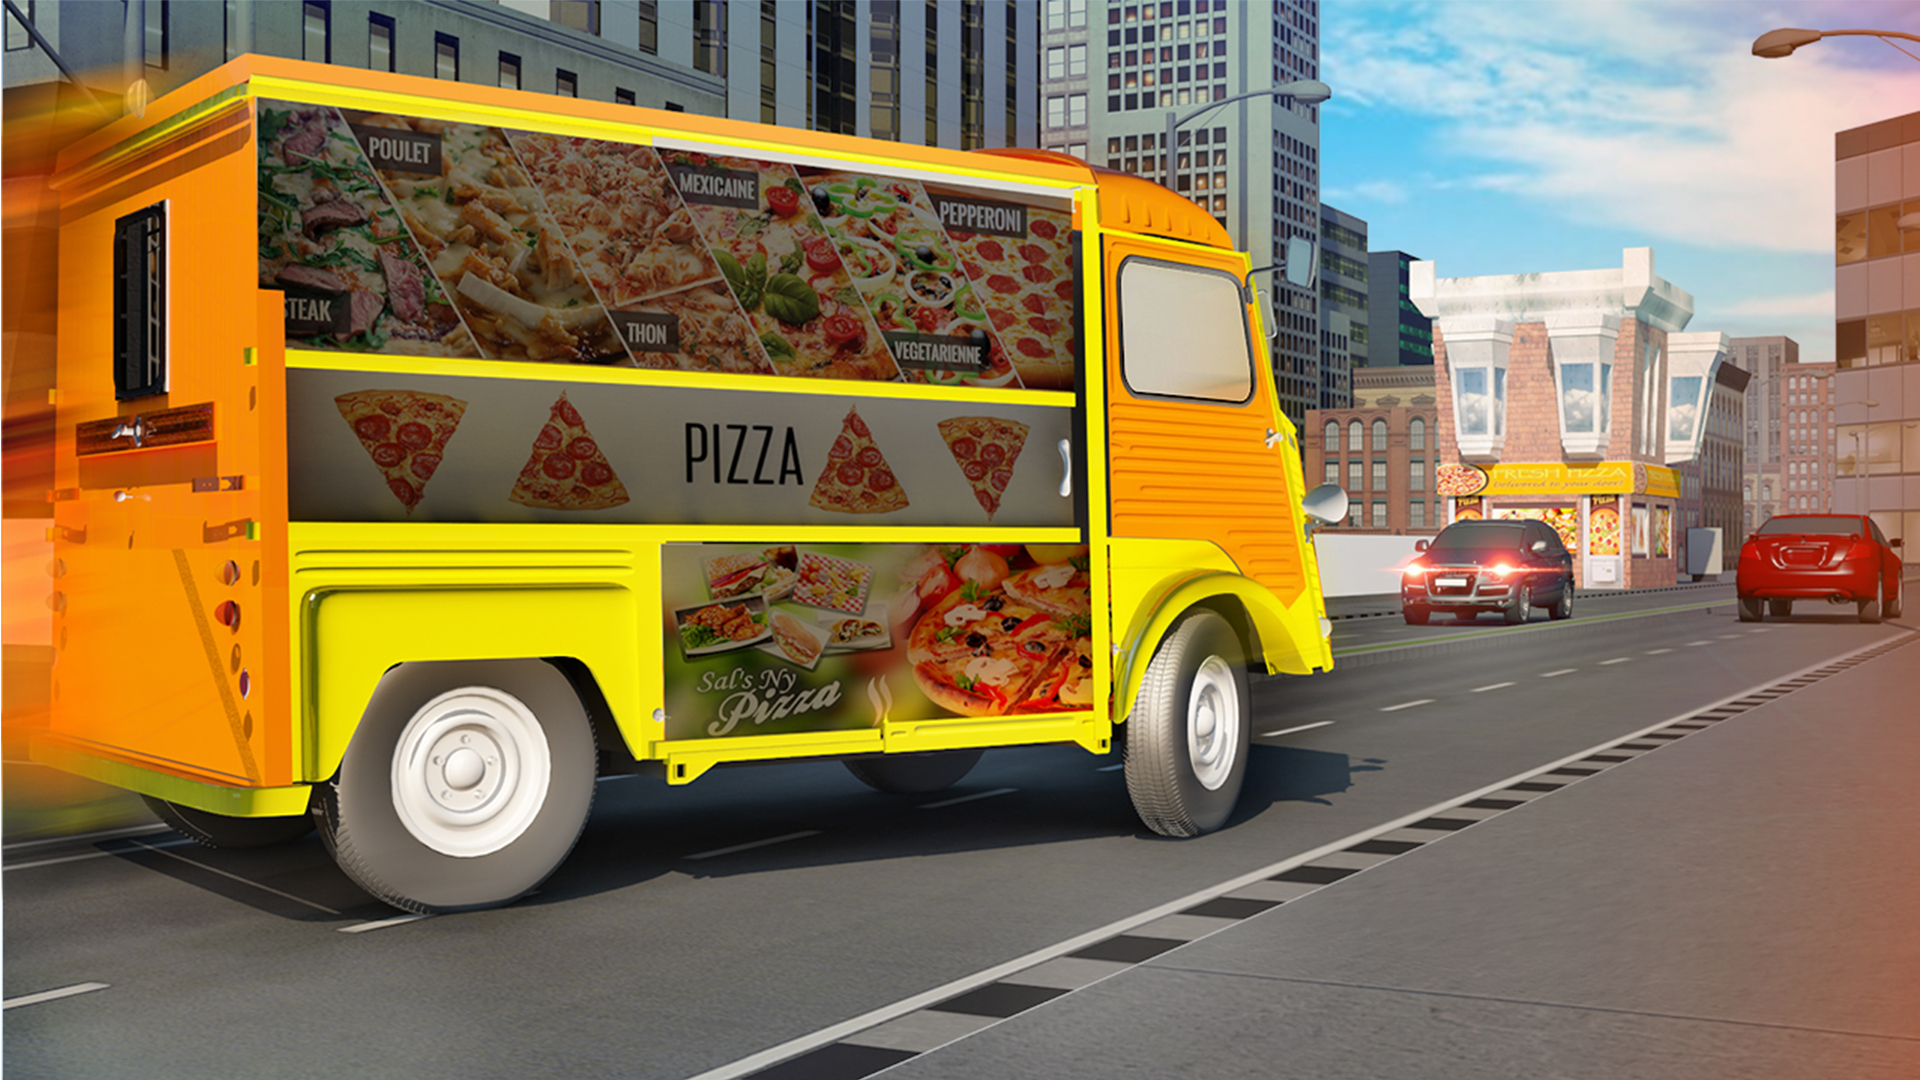 Grand Pizza - Superhero Van